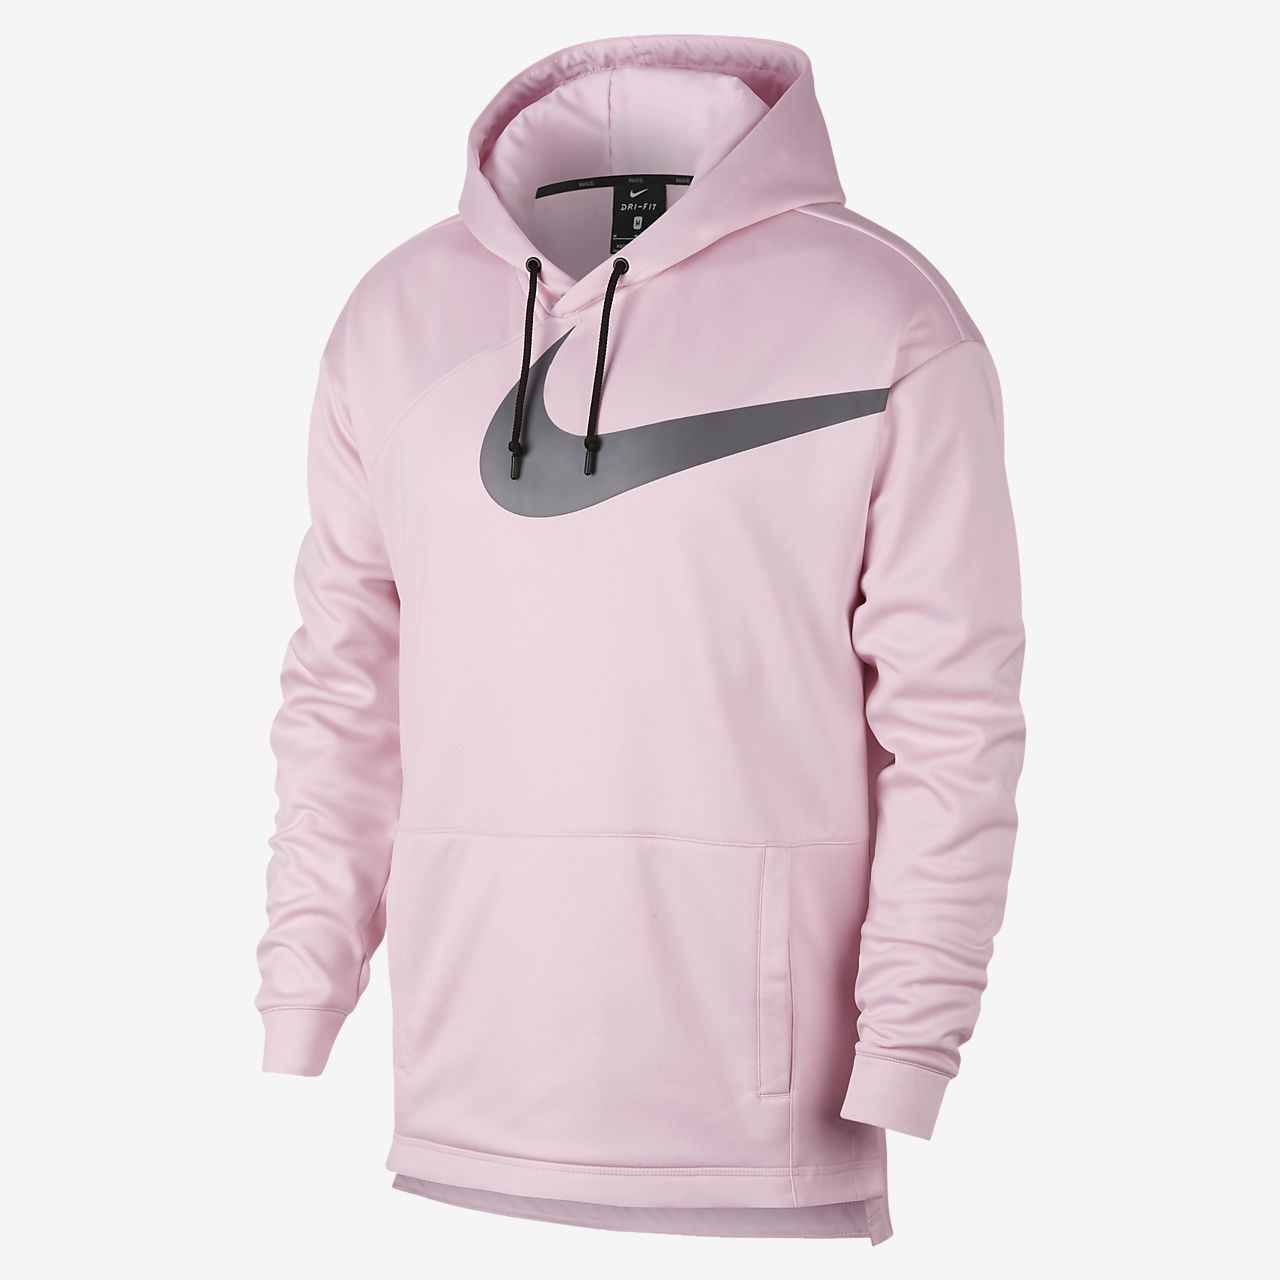 8ca1abaa7776 Sweat à capuche de training Nike Therma Modern pour Homme. Nike.com FR